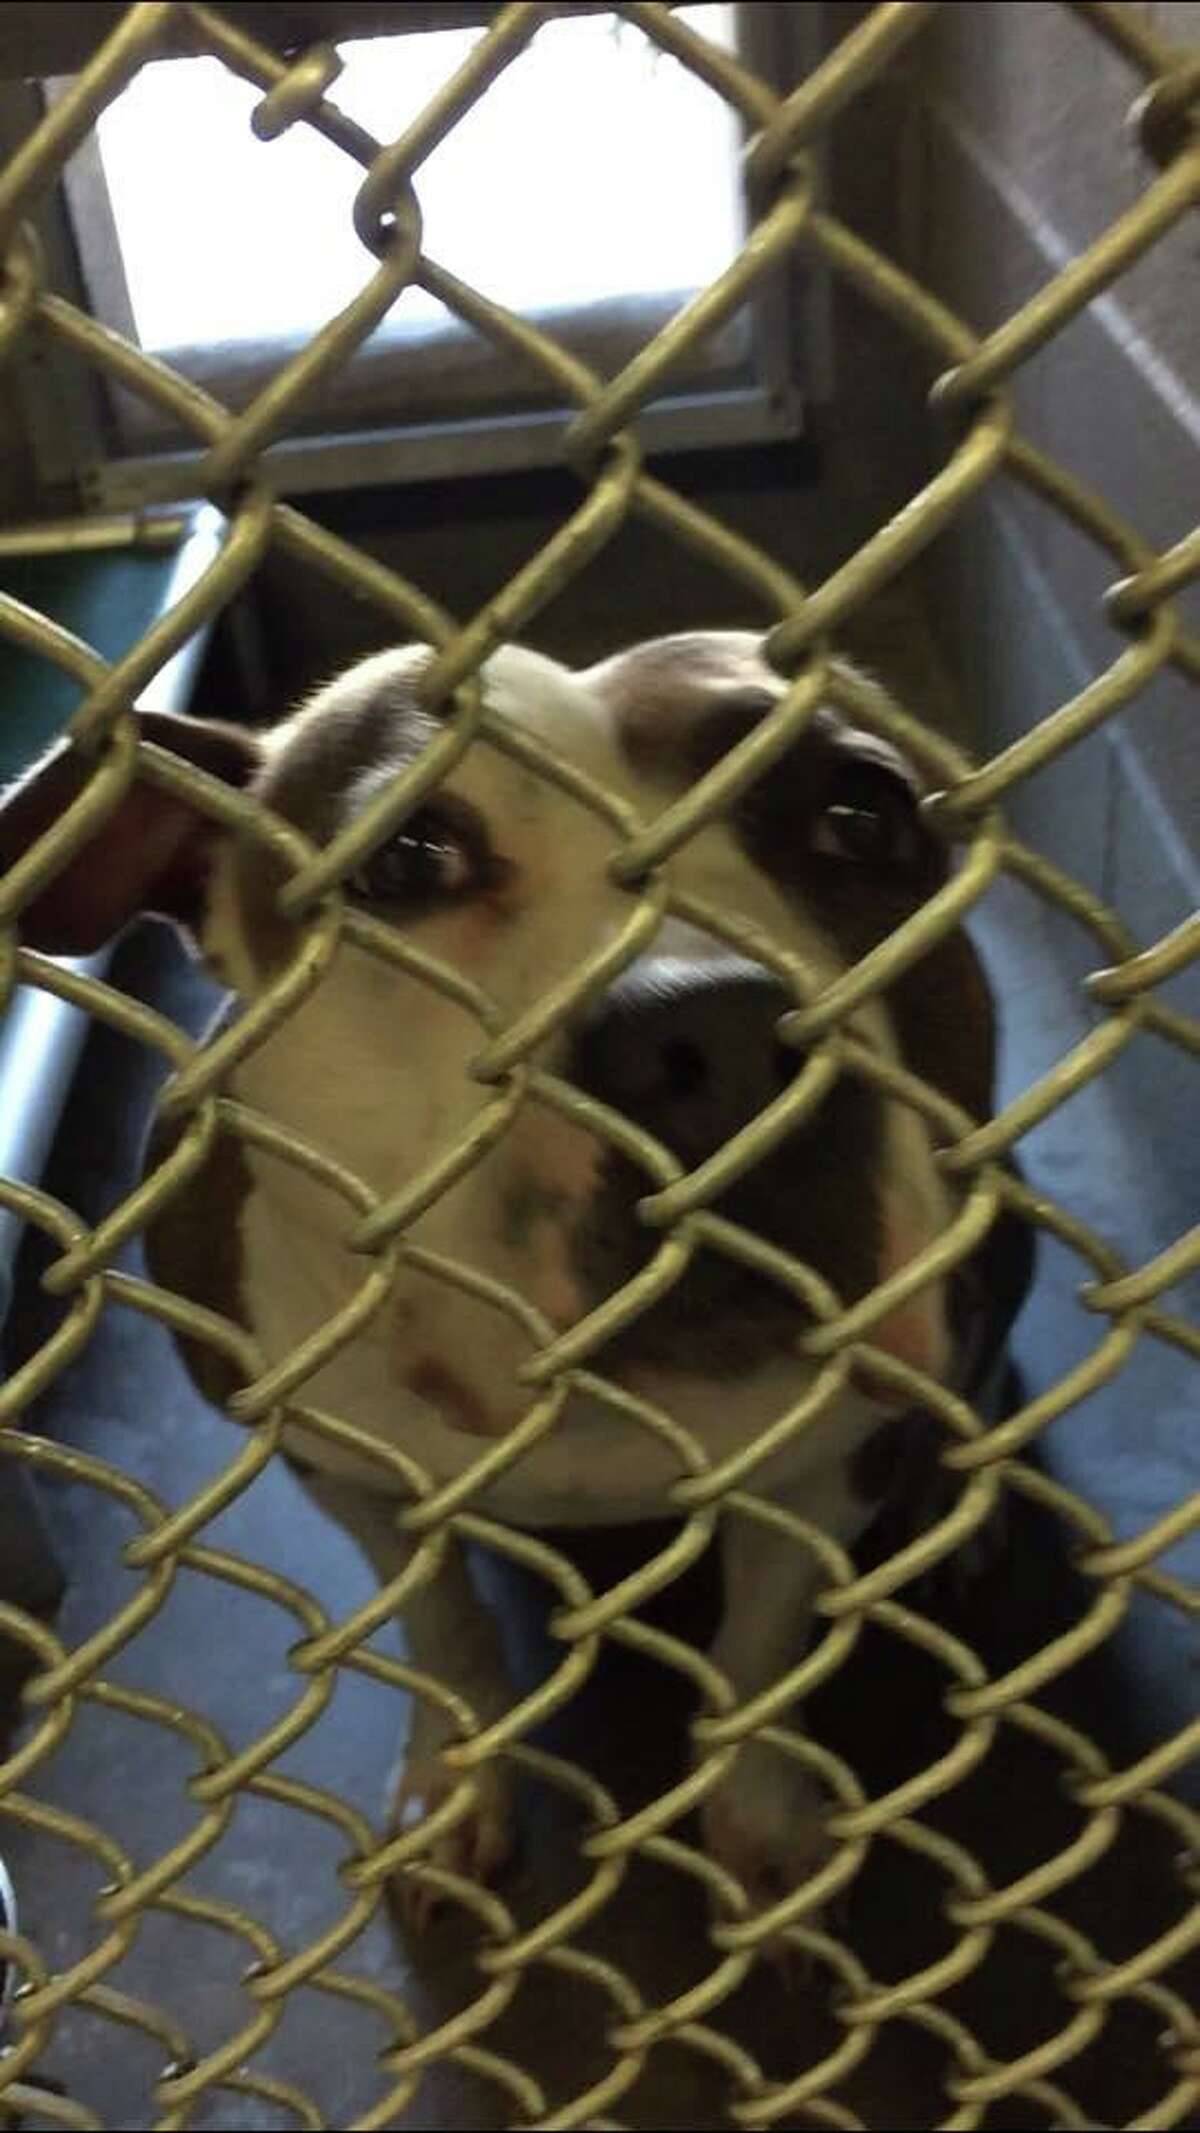 Police received a report on July 26, 2019 of a dog tied to a tree in the park near Norwalk's border with Wilton. Officers found an approximately 3-year-old pit breed tied with a collar that identified her as